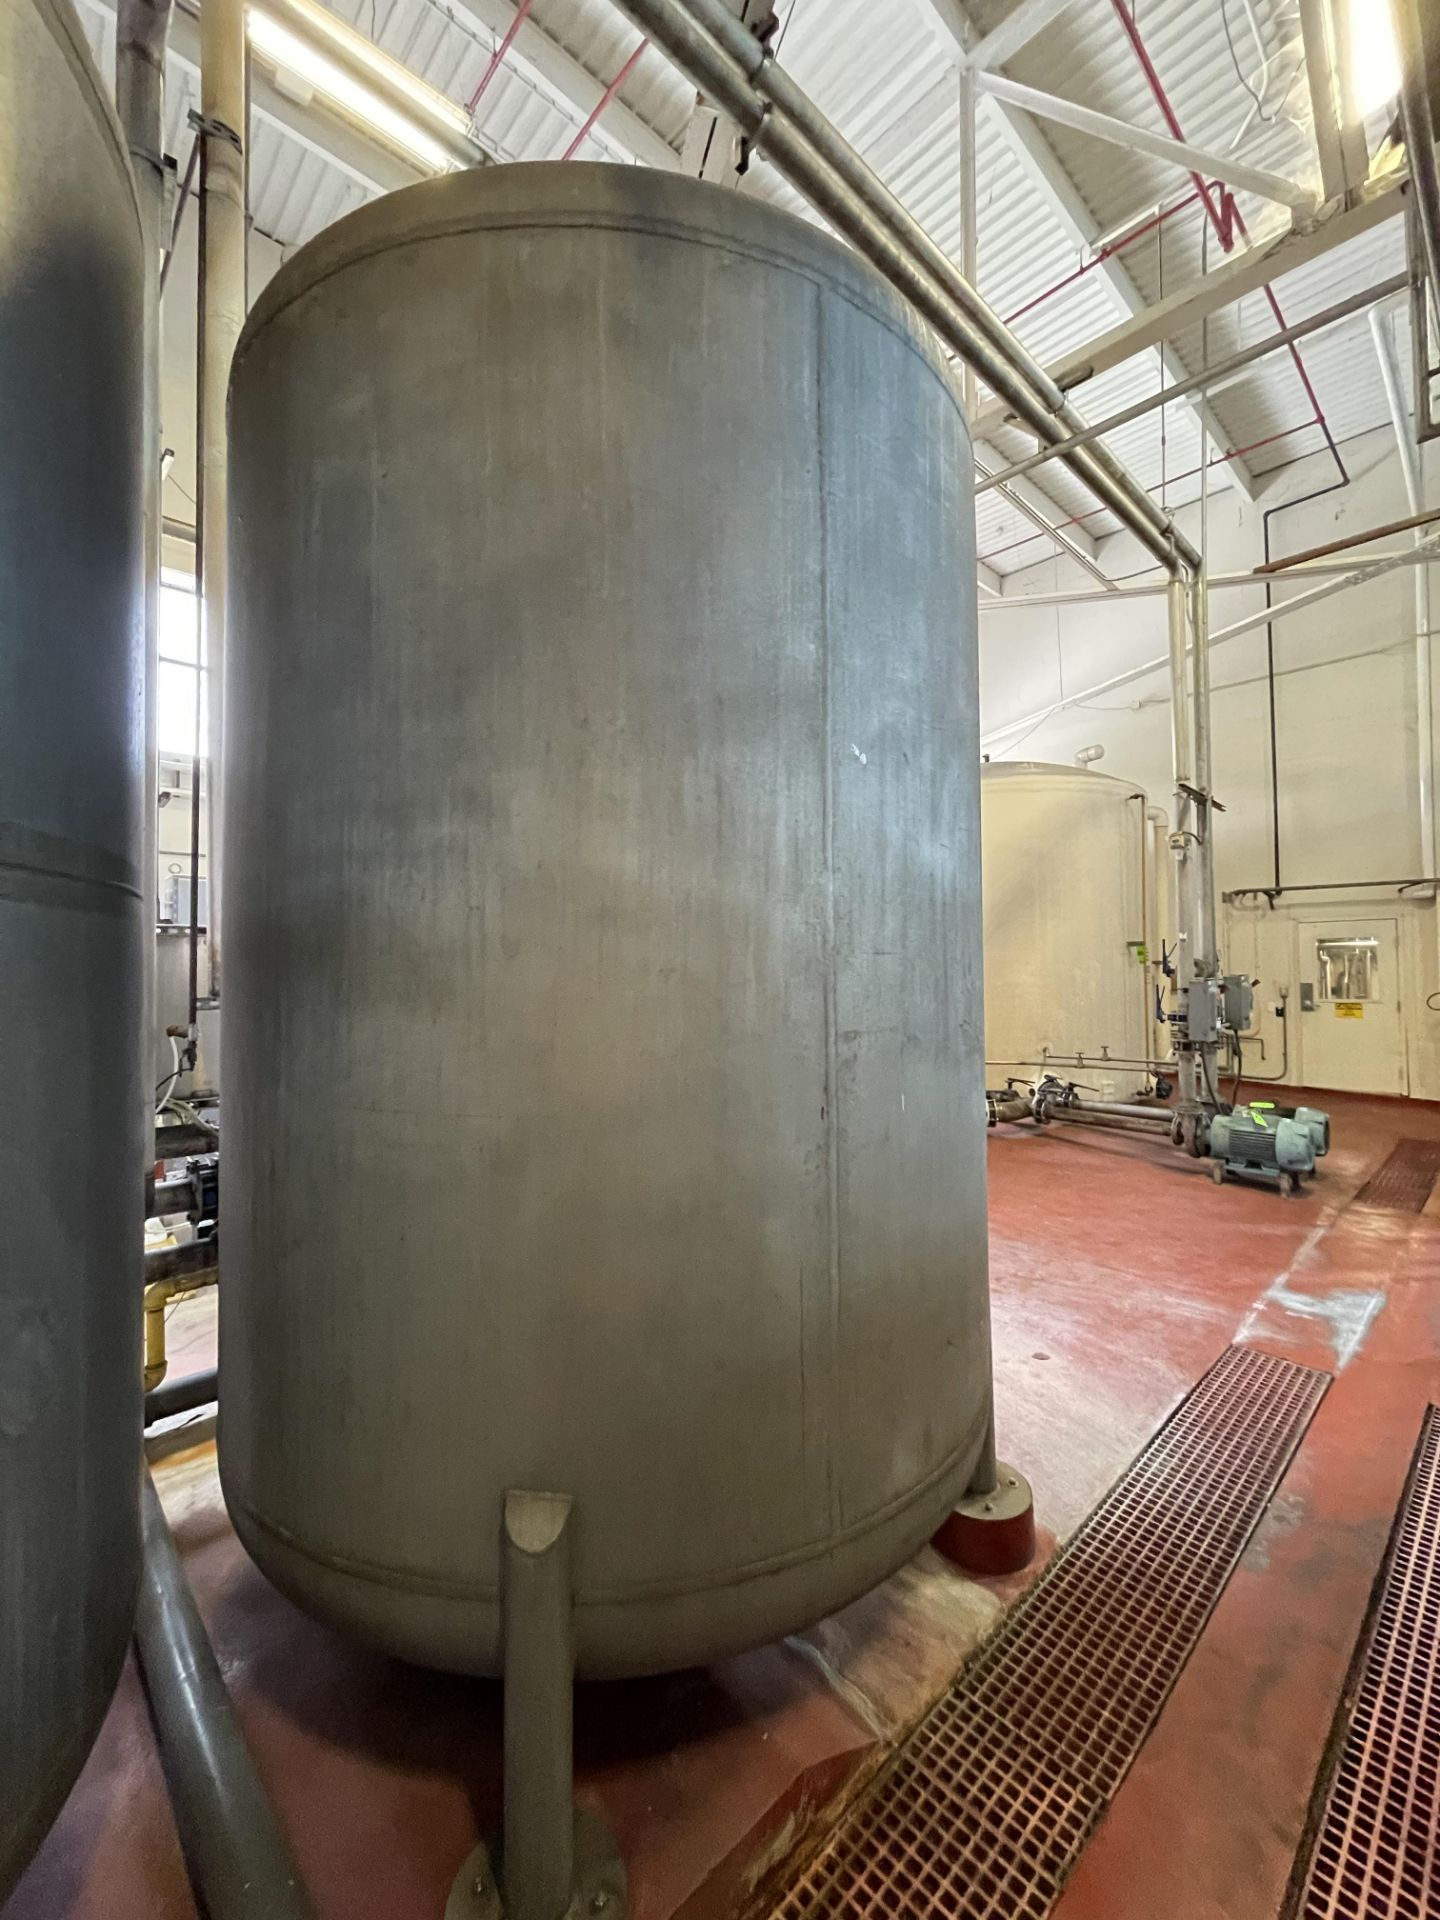 2700 Gallon Stainless Steel Carbon Tower - Image 5 of 5